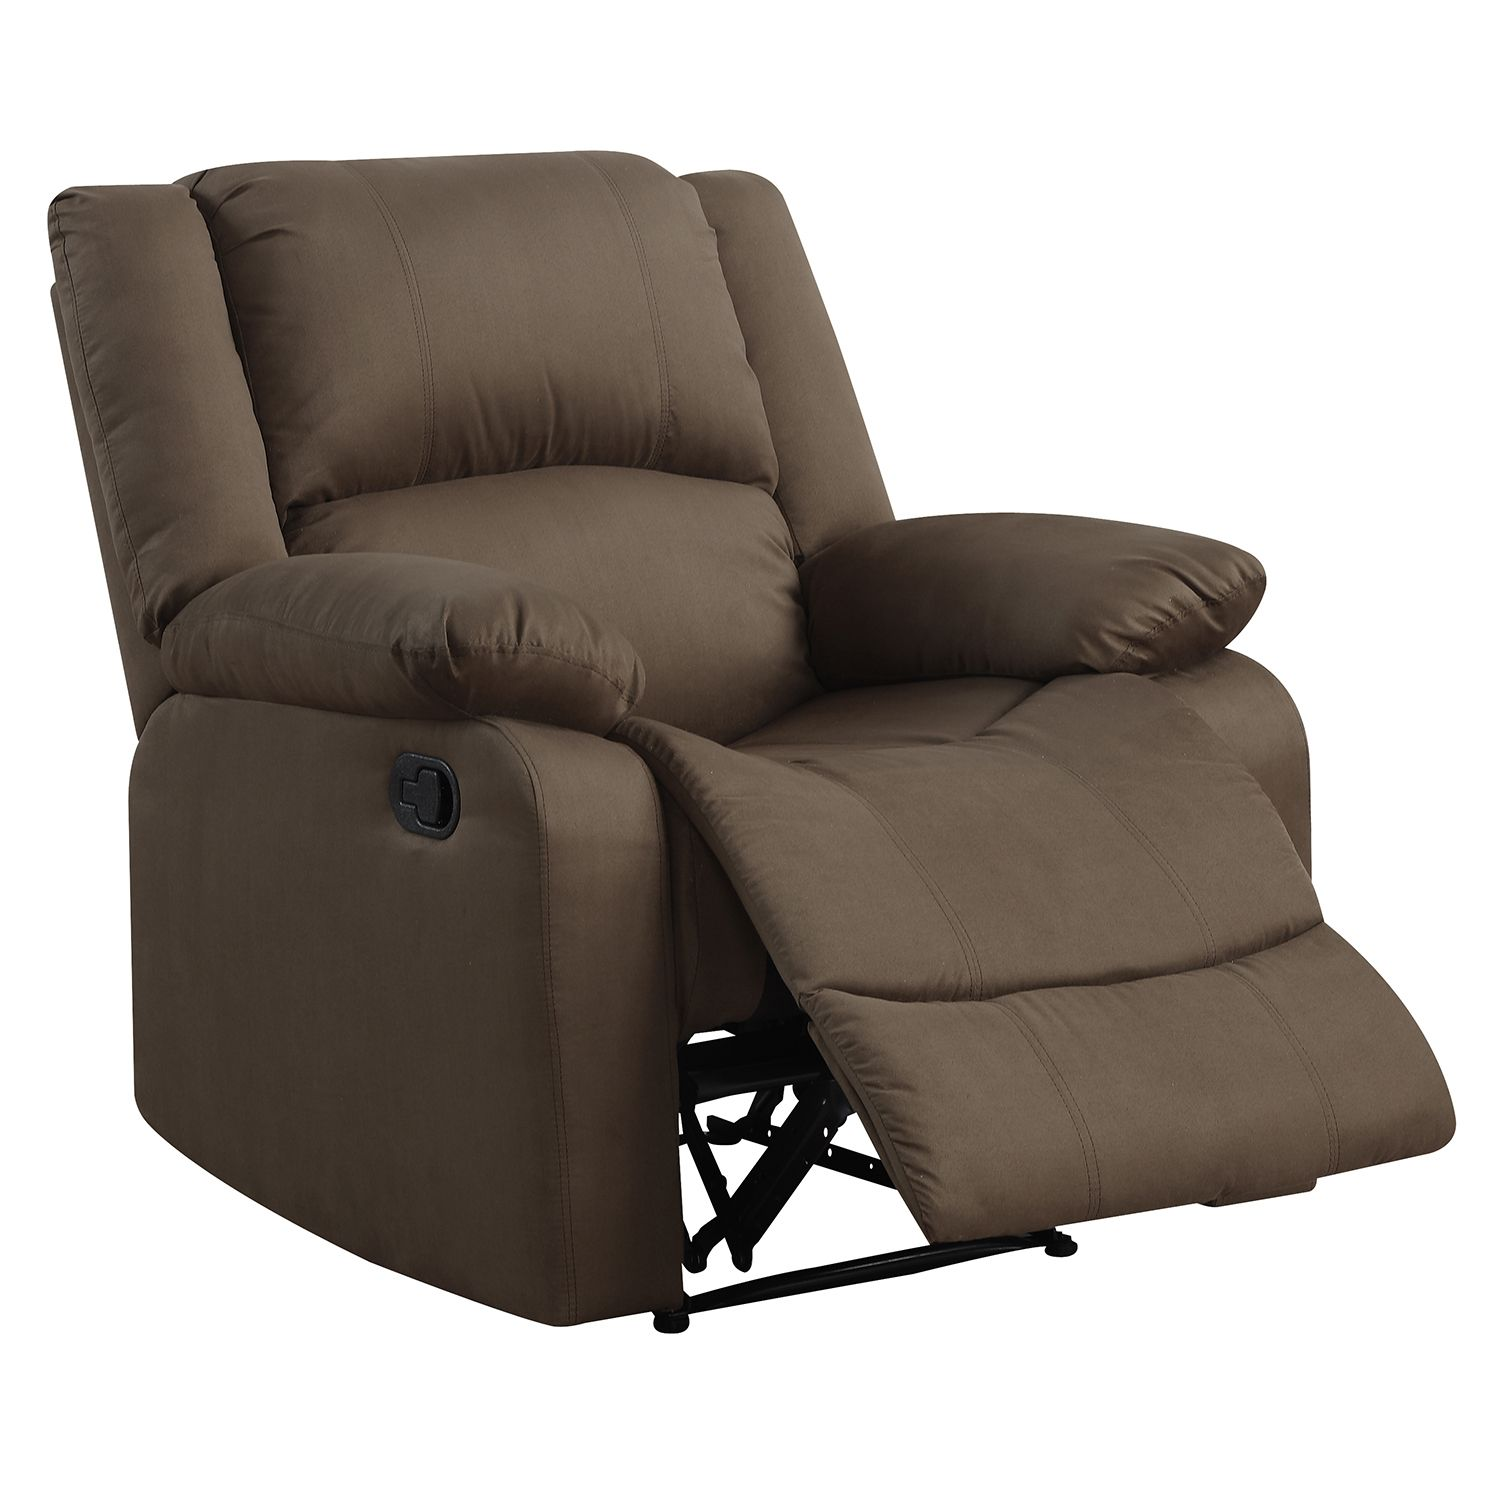 powell chairs amazon dorel rocker living recliners la tree real room camouflaged recliner com furniture